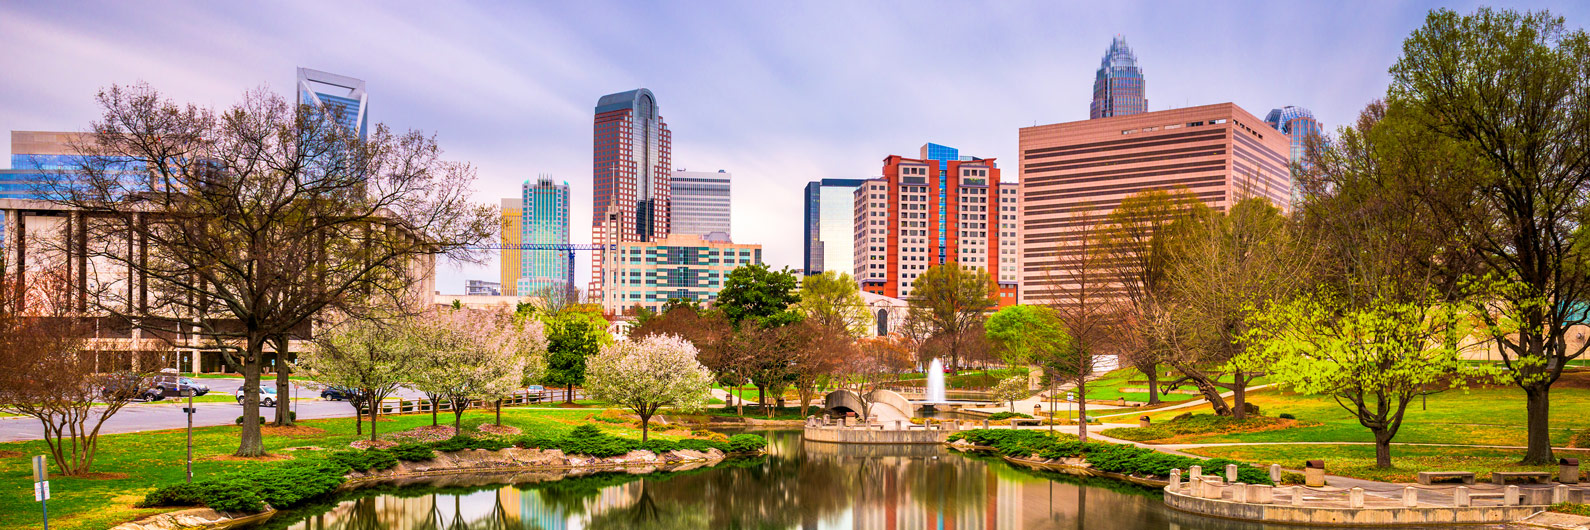 Cheap flights from philadelphia to austin tx